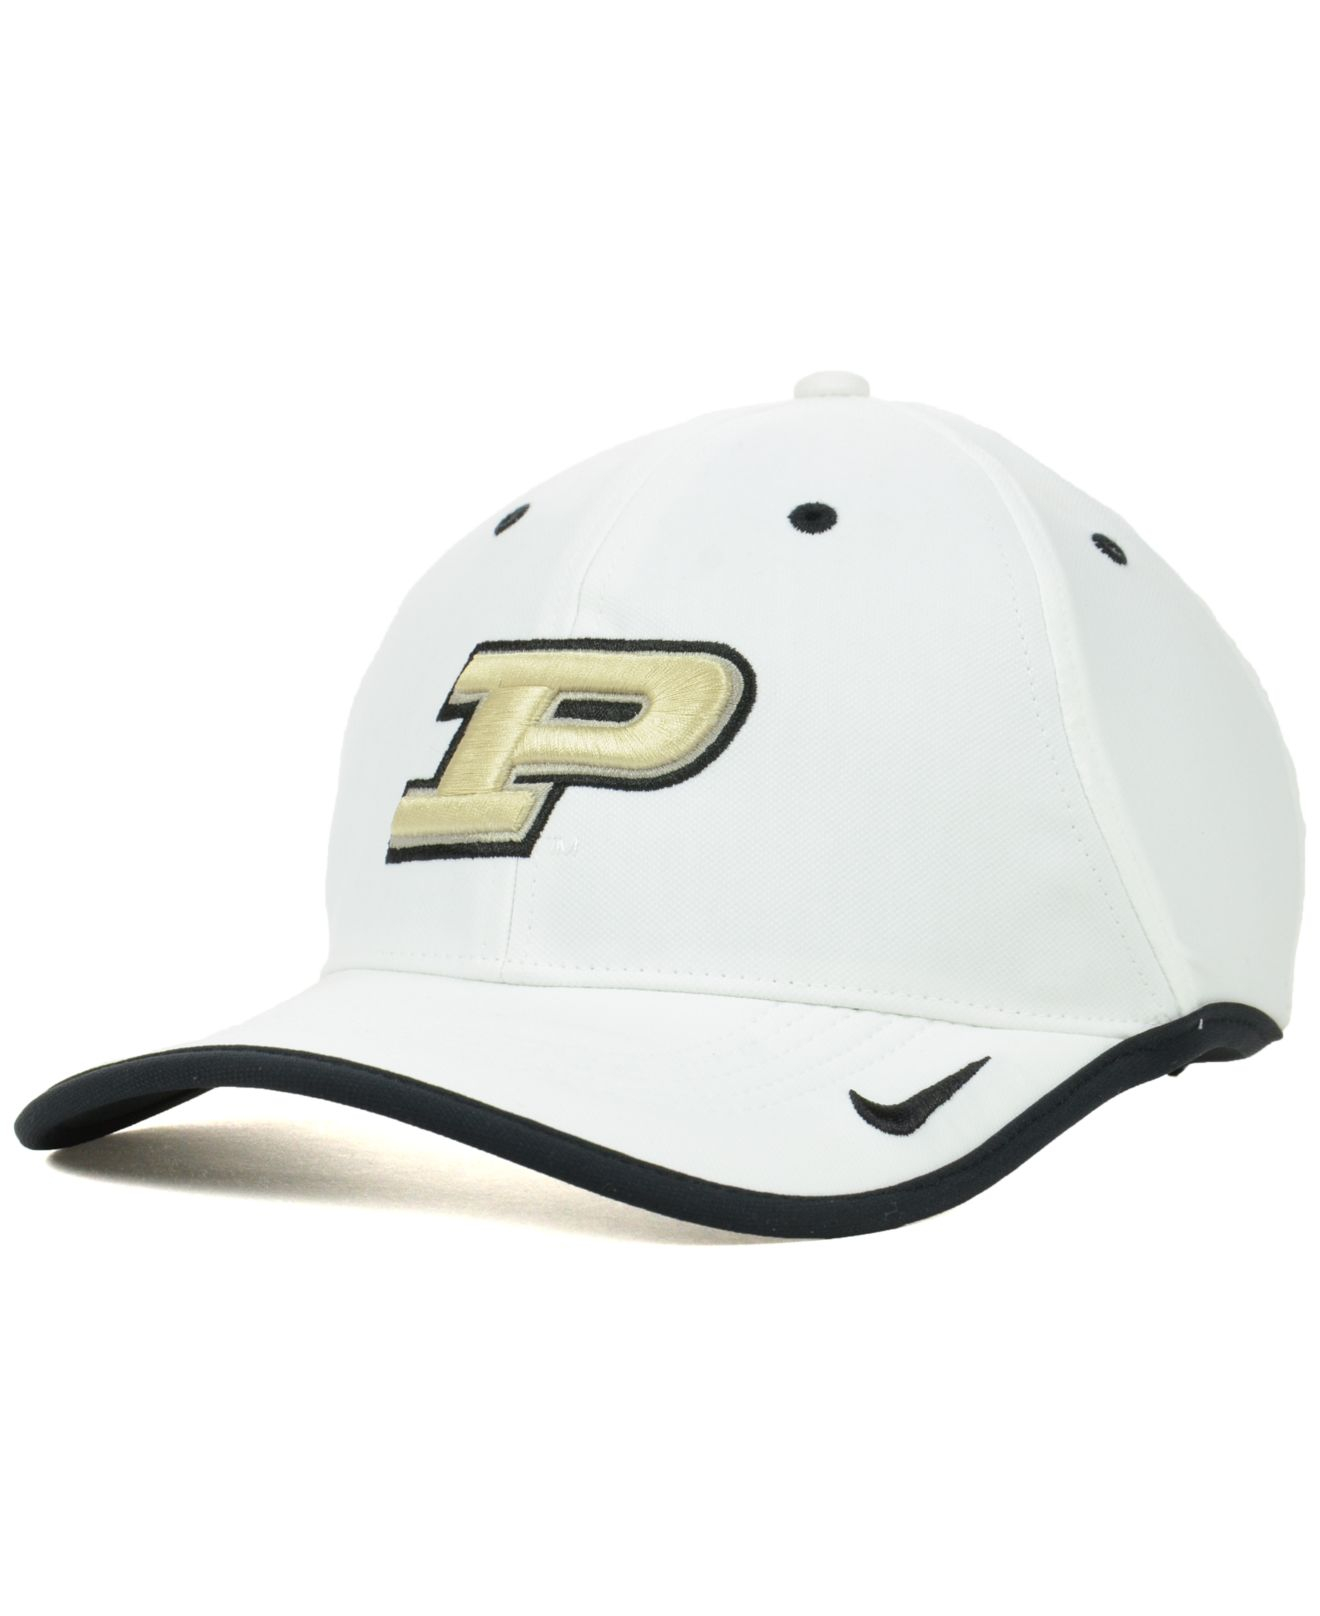 timeless design 62feb 3fb82 Nike Purdue Boilermakers Ncaa Coaches Cap in White for Men - Lyst